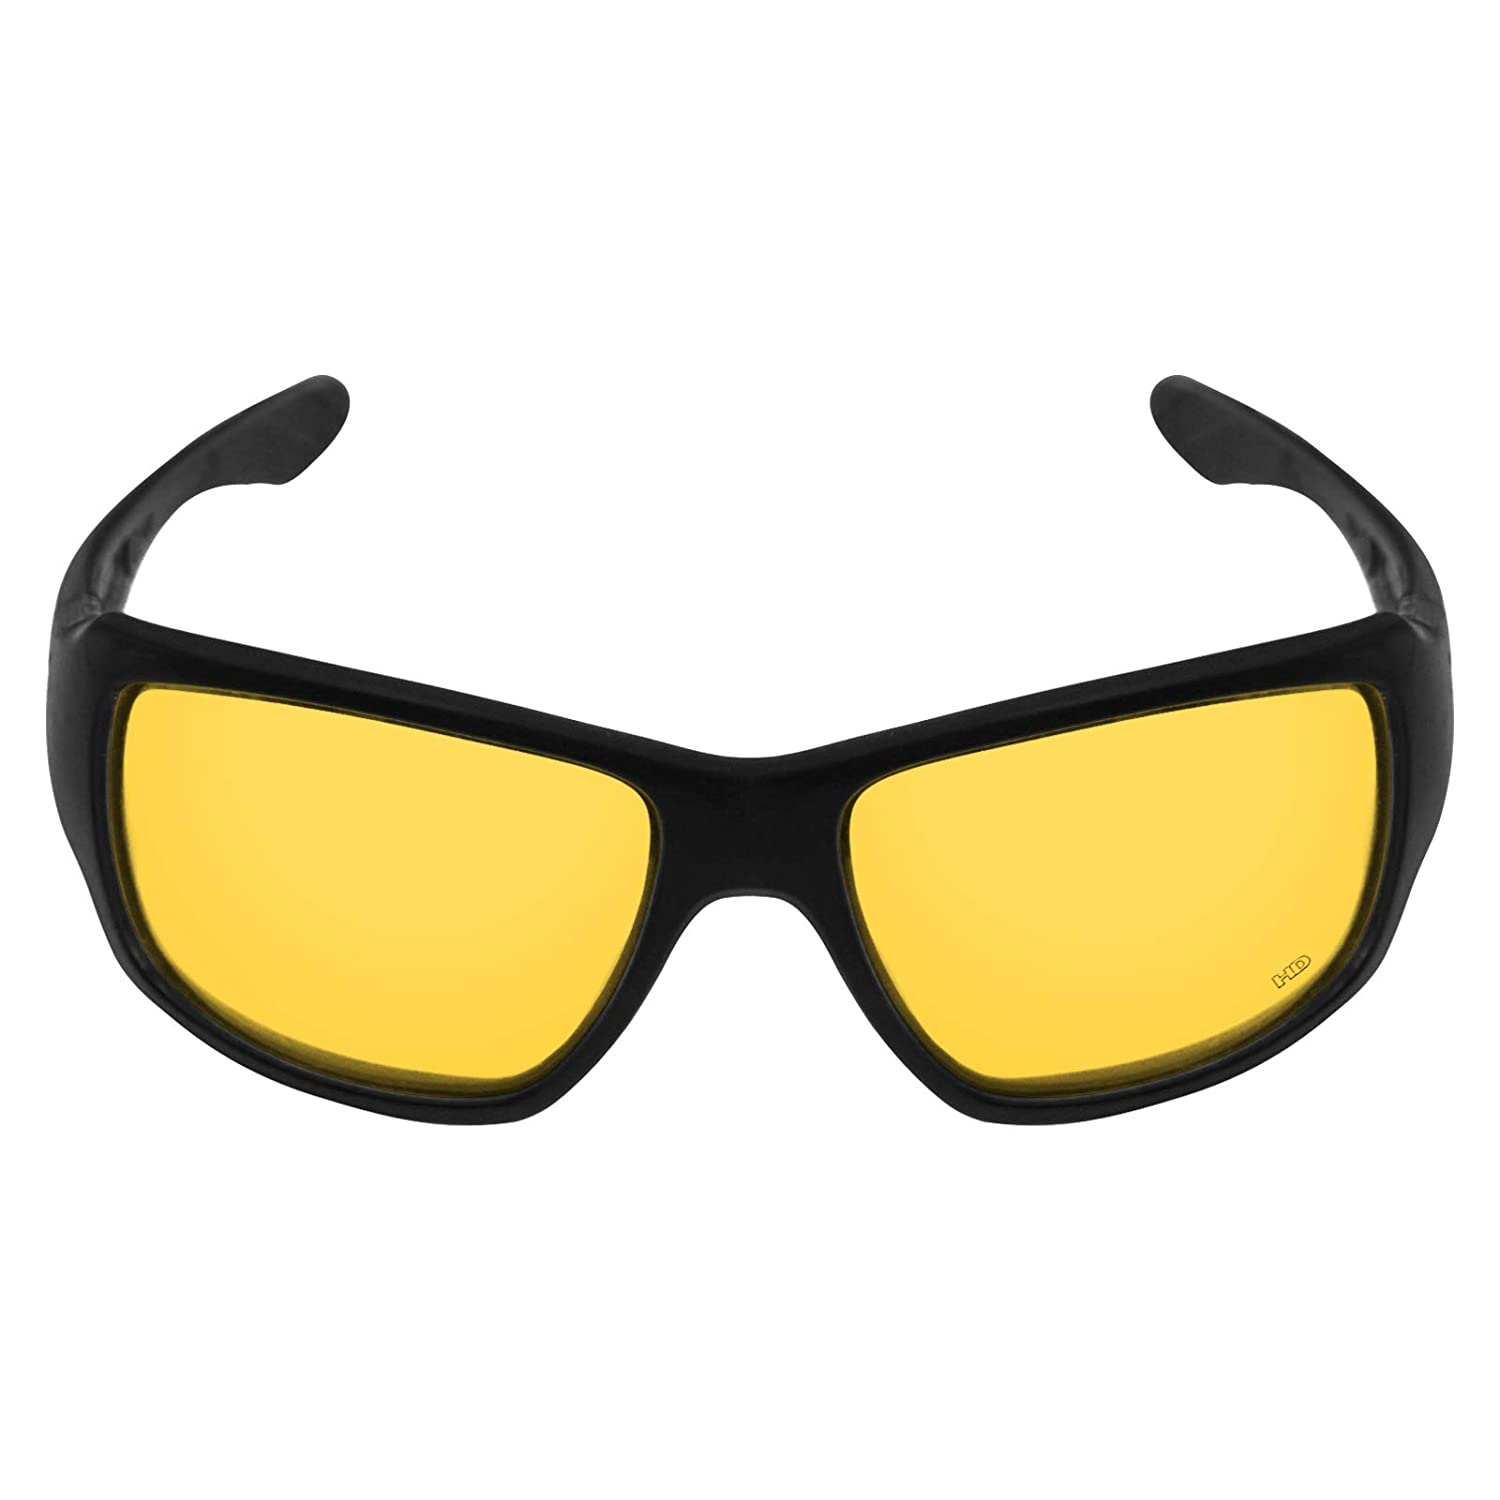 4ddcf91f30 Mryok+ Polarized Replacement Lenses for Oakley Big Taco - HD Yellow   Amazon.ca  Clothing   Accessories